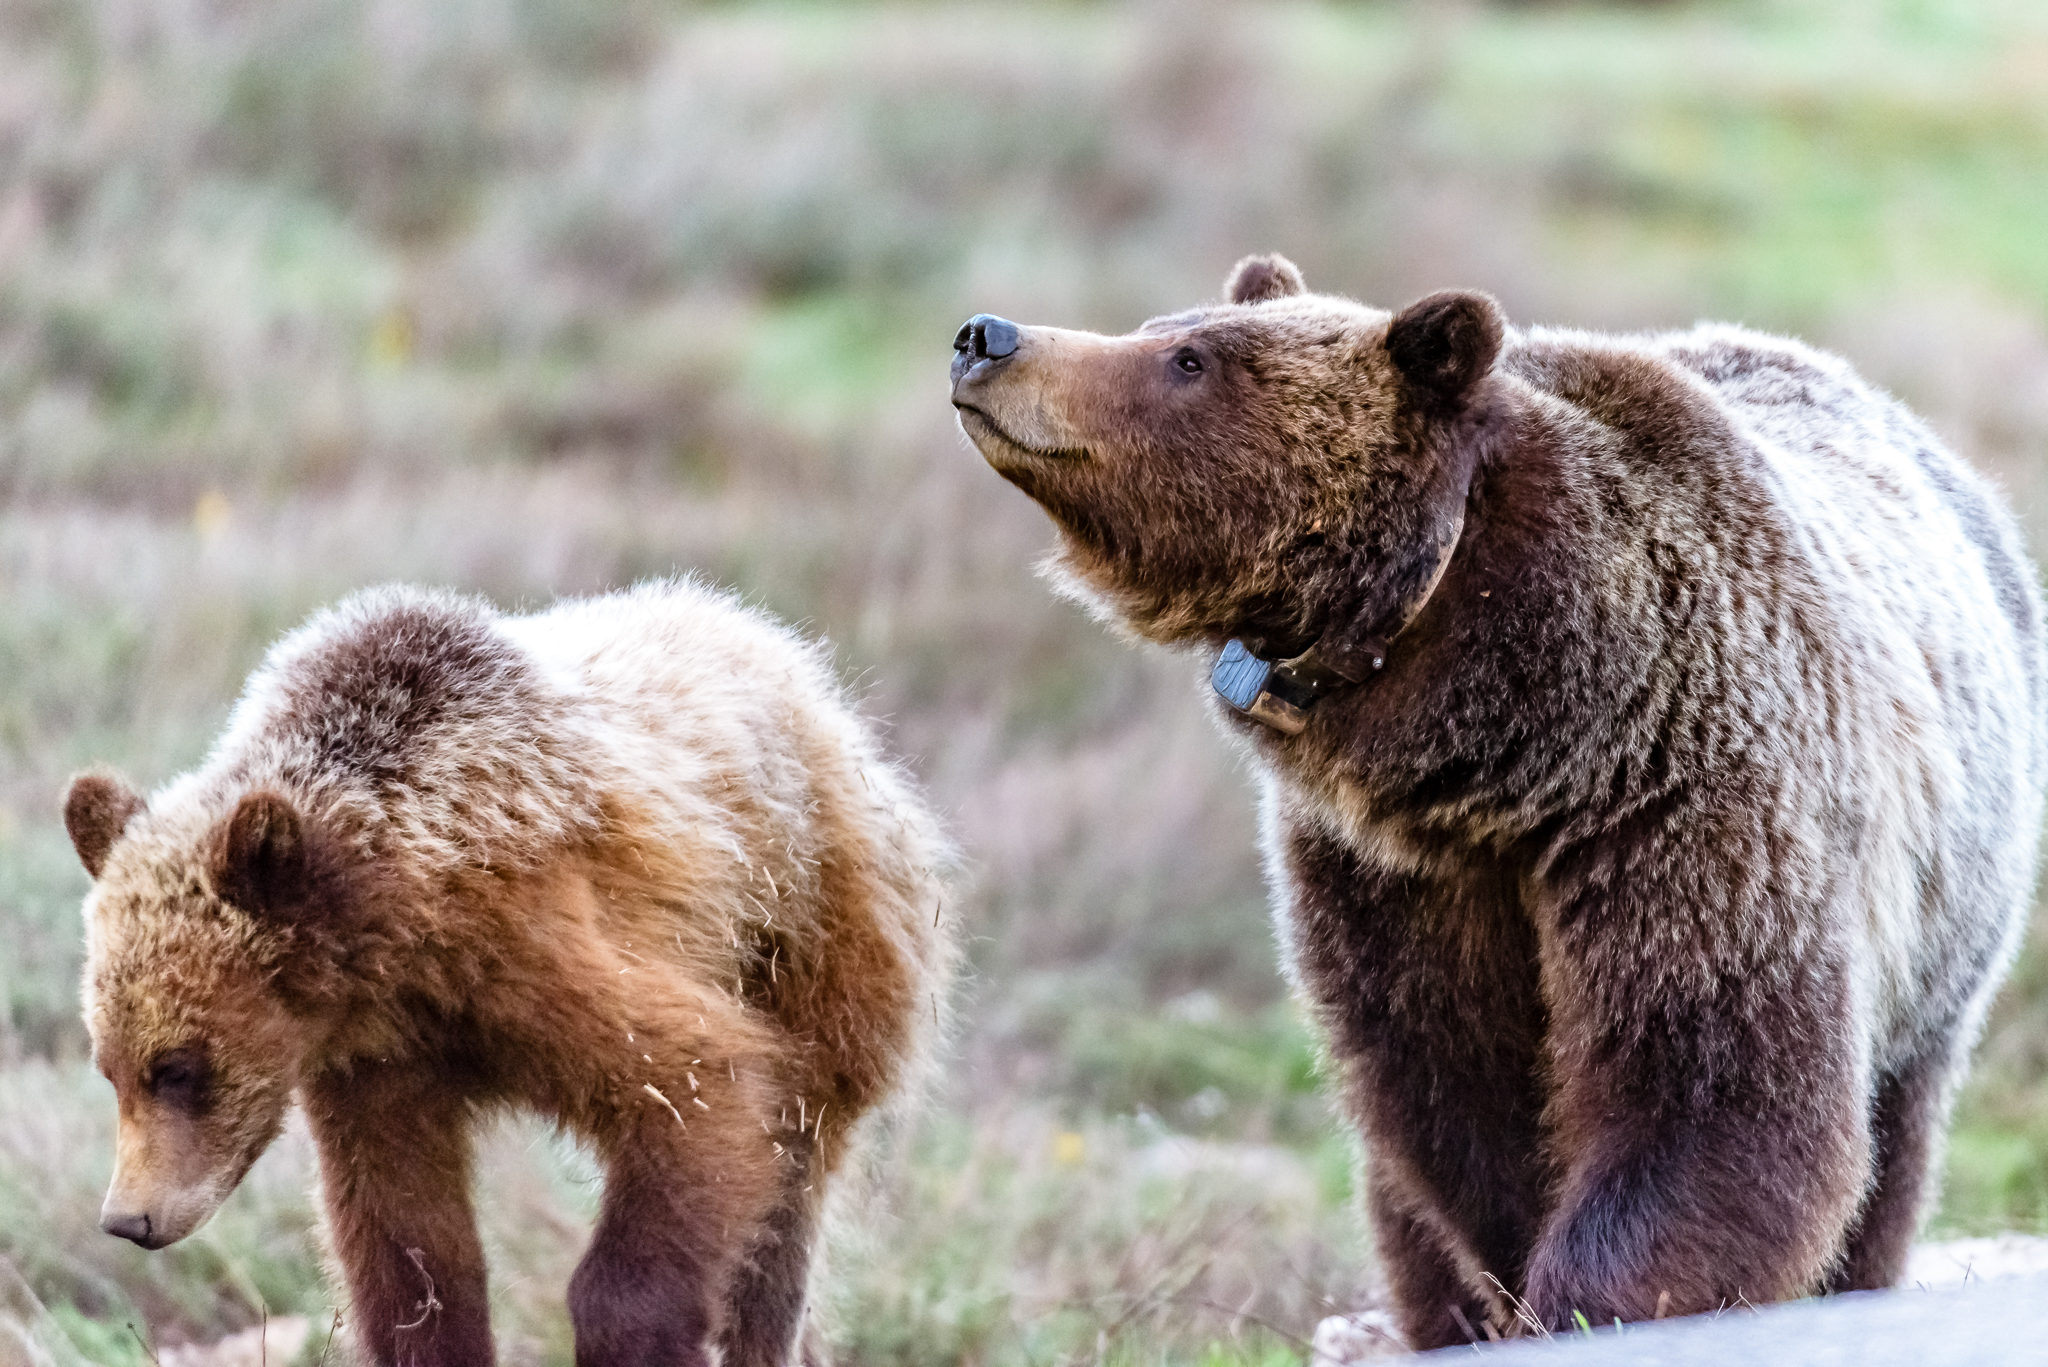 Grizzly 399 with one of her cubs.